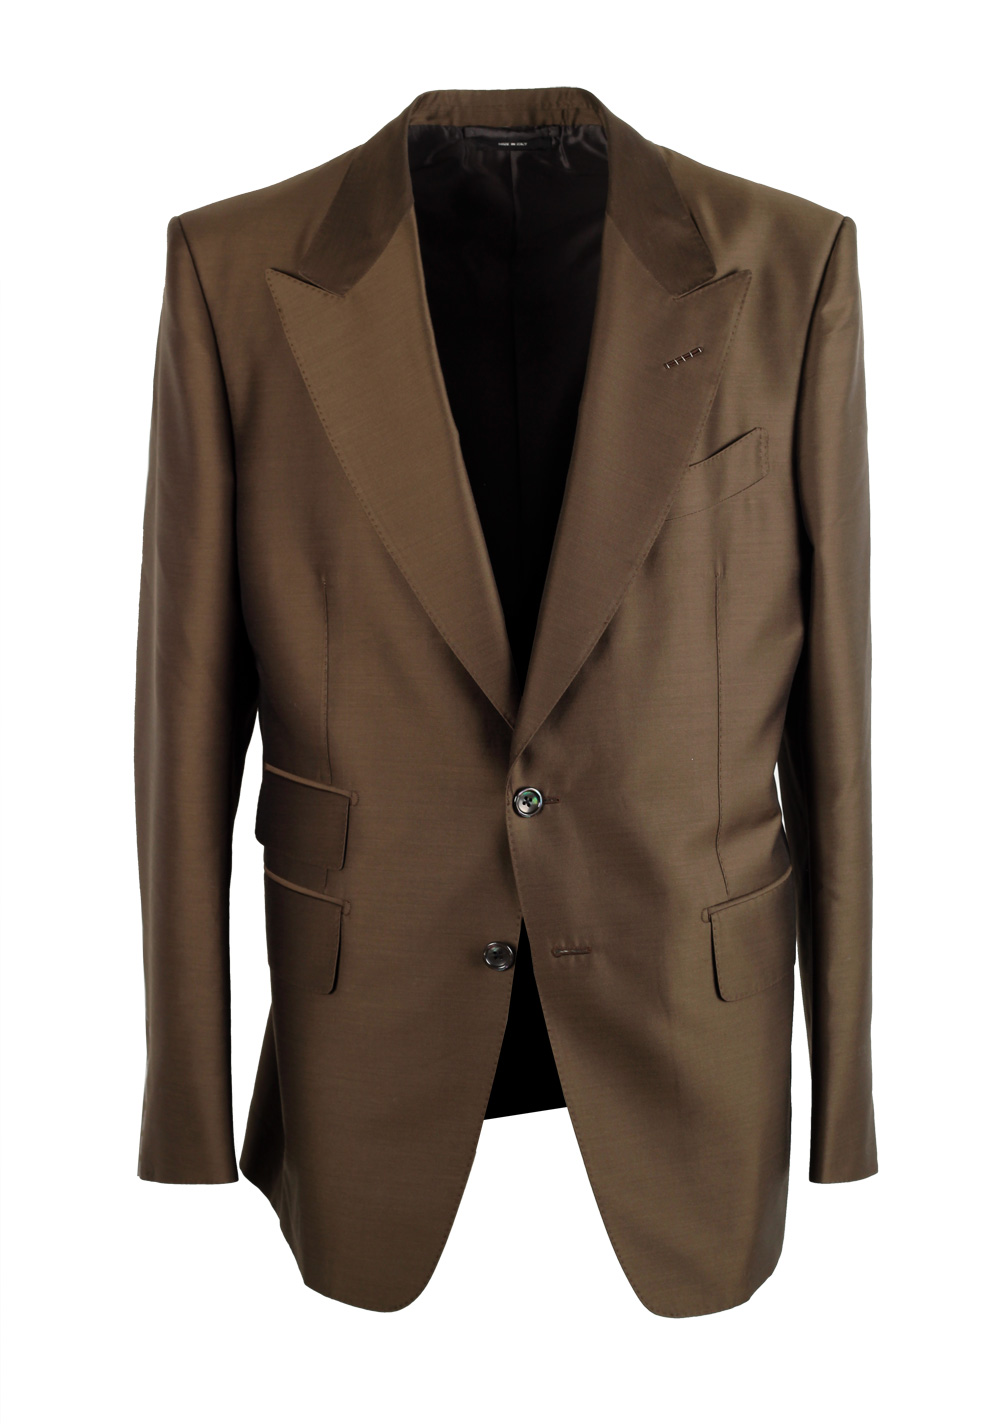 TOM FORD Shelton Brown Suit Size 50 / 40R U.S. | Costume Limité